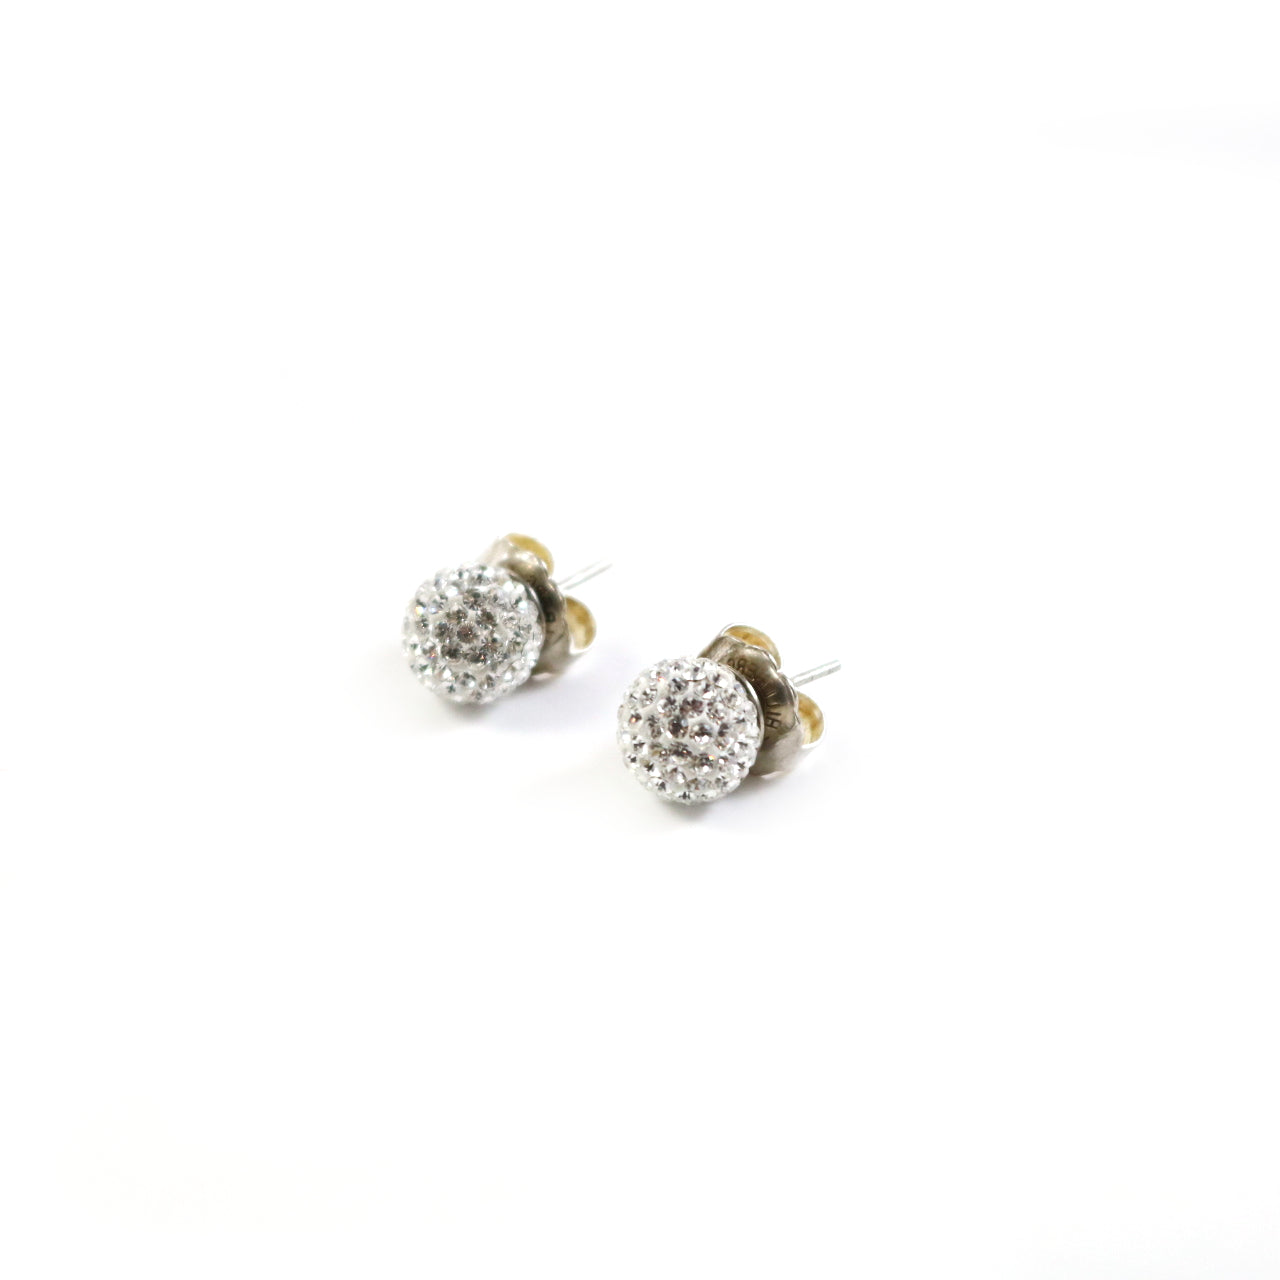 10mm White Stud Earrings